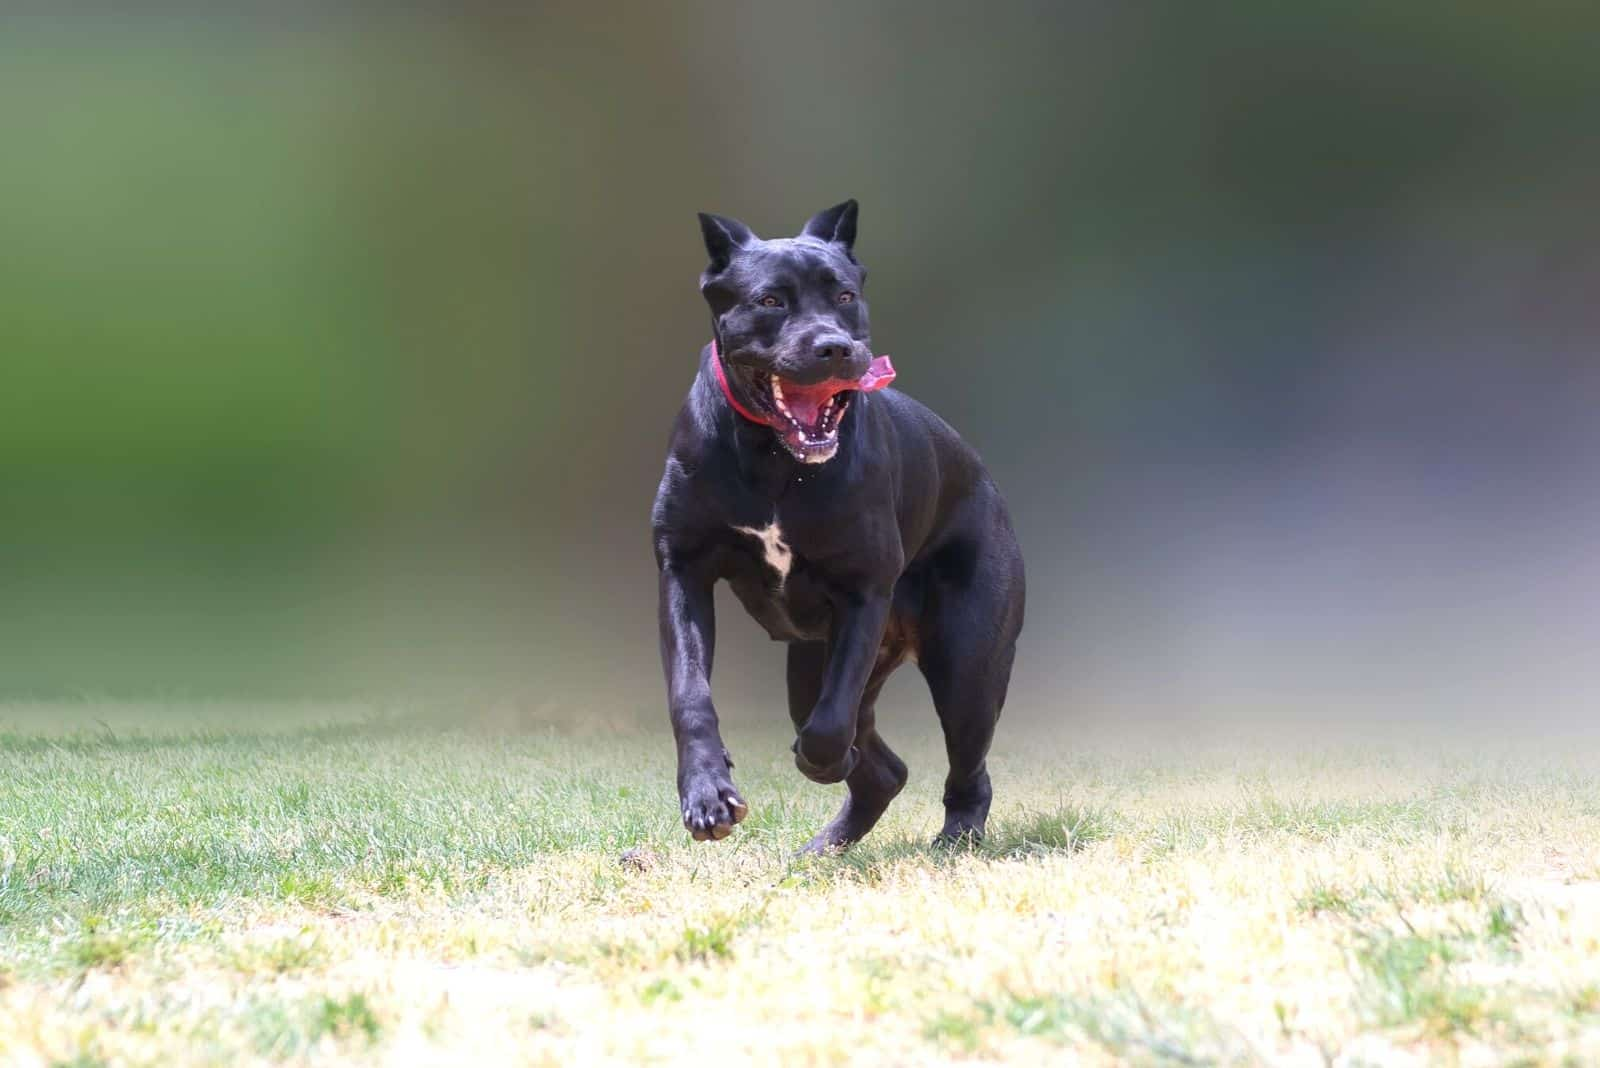 cane corso jumping and running in blurred background outdoors